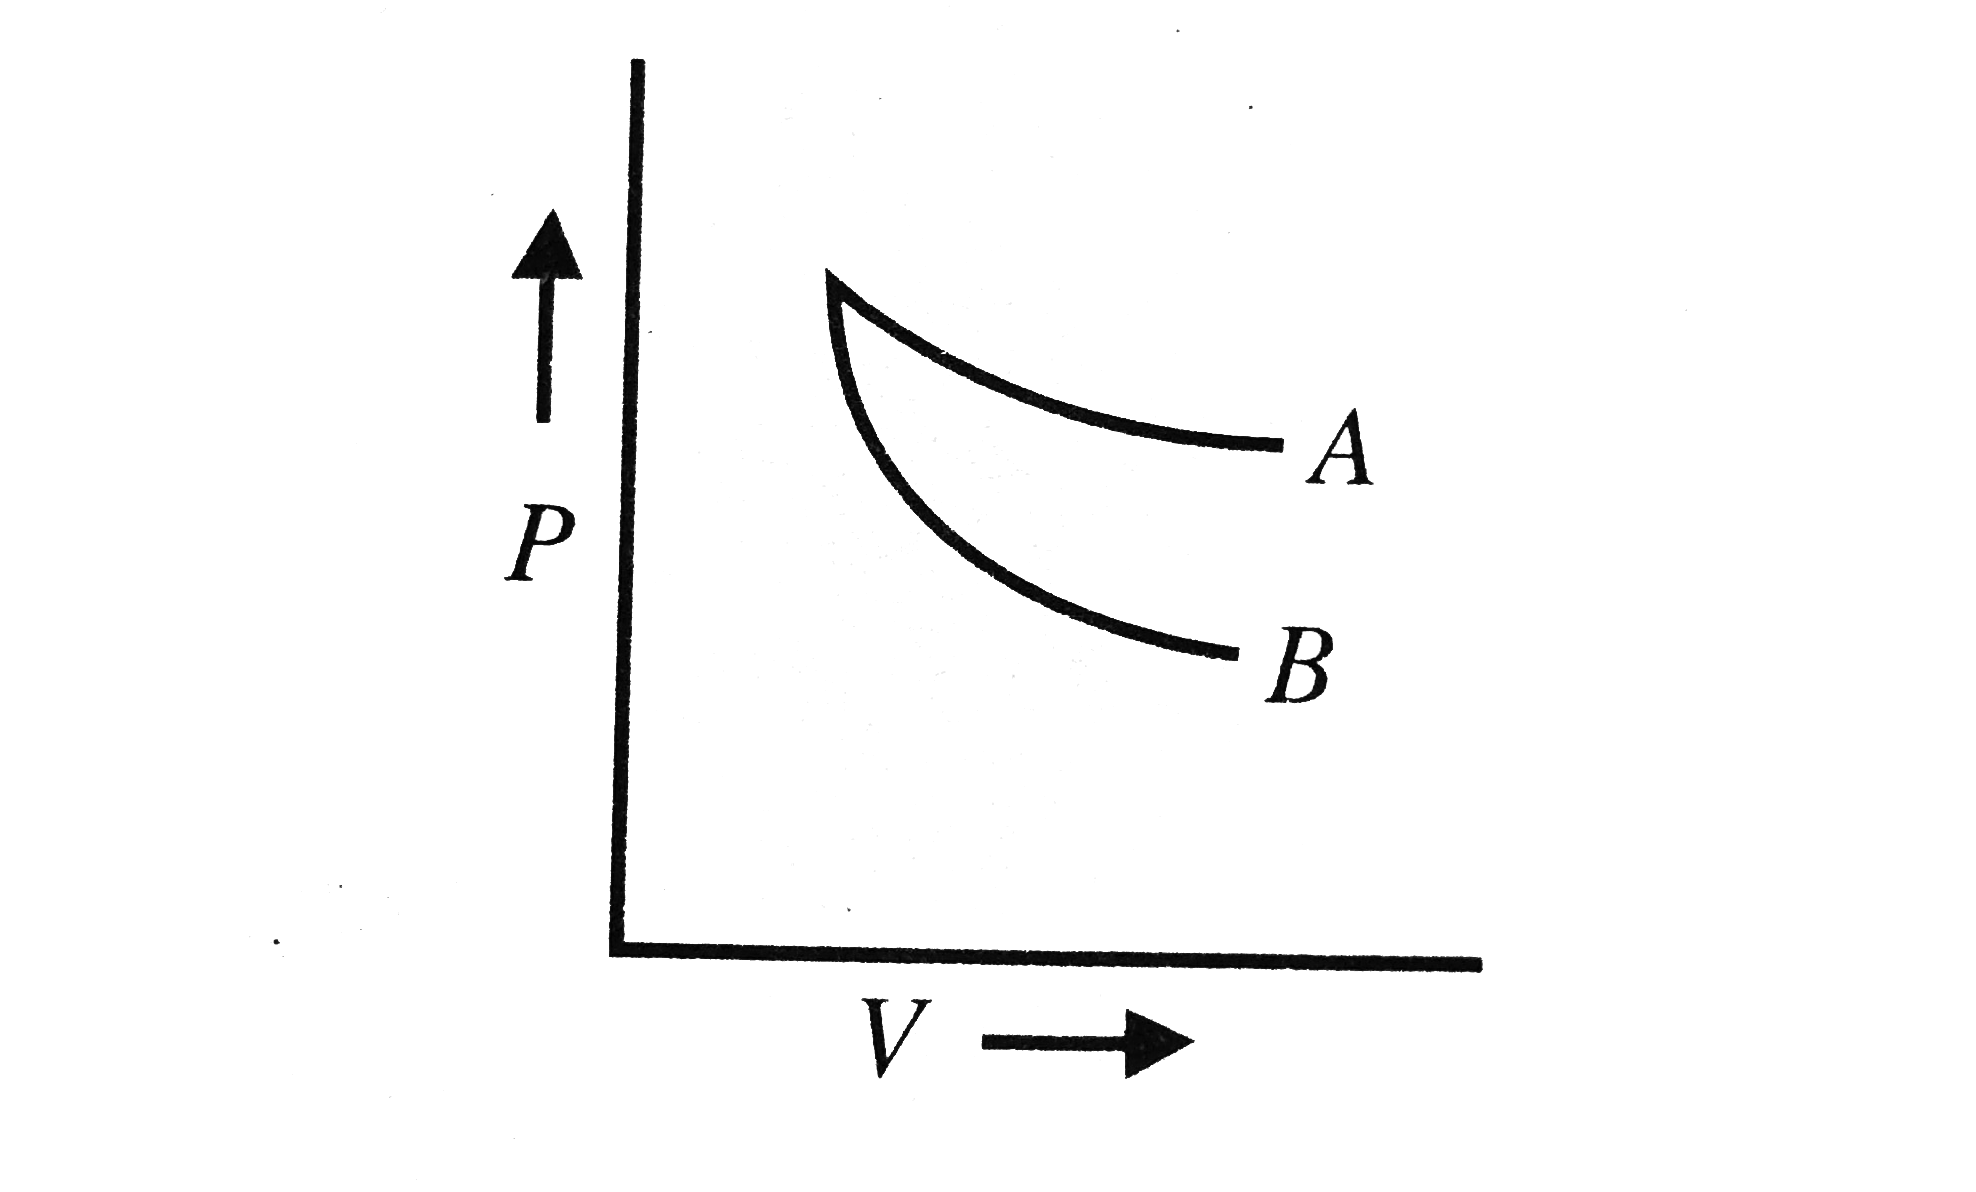 hight resolution of the curves a and b in figure show p v graphs for an isothermal and an adiabatic process of an ideal gas the isothermal process is represented by the curve